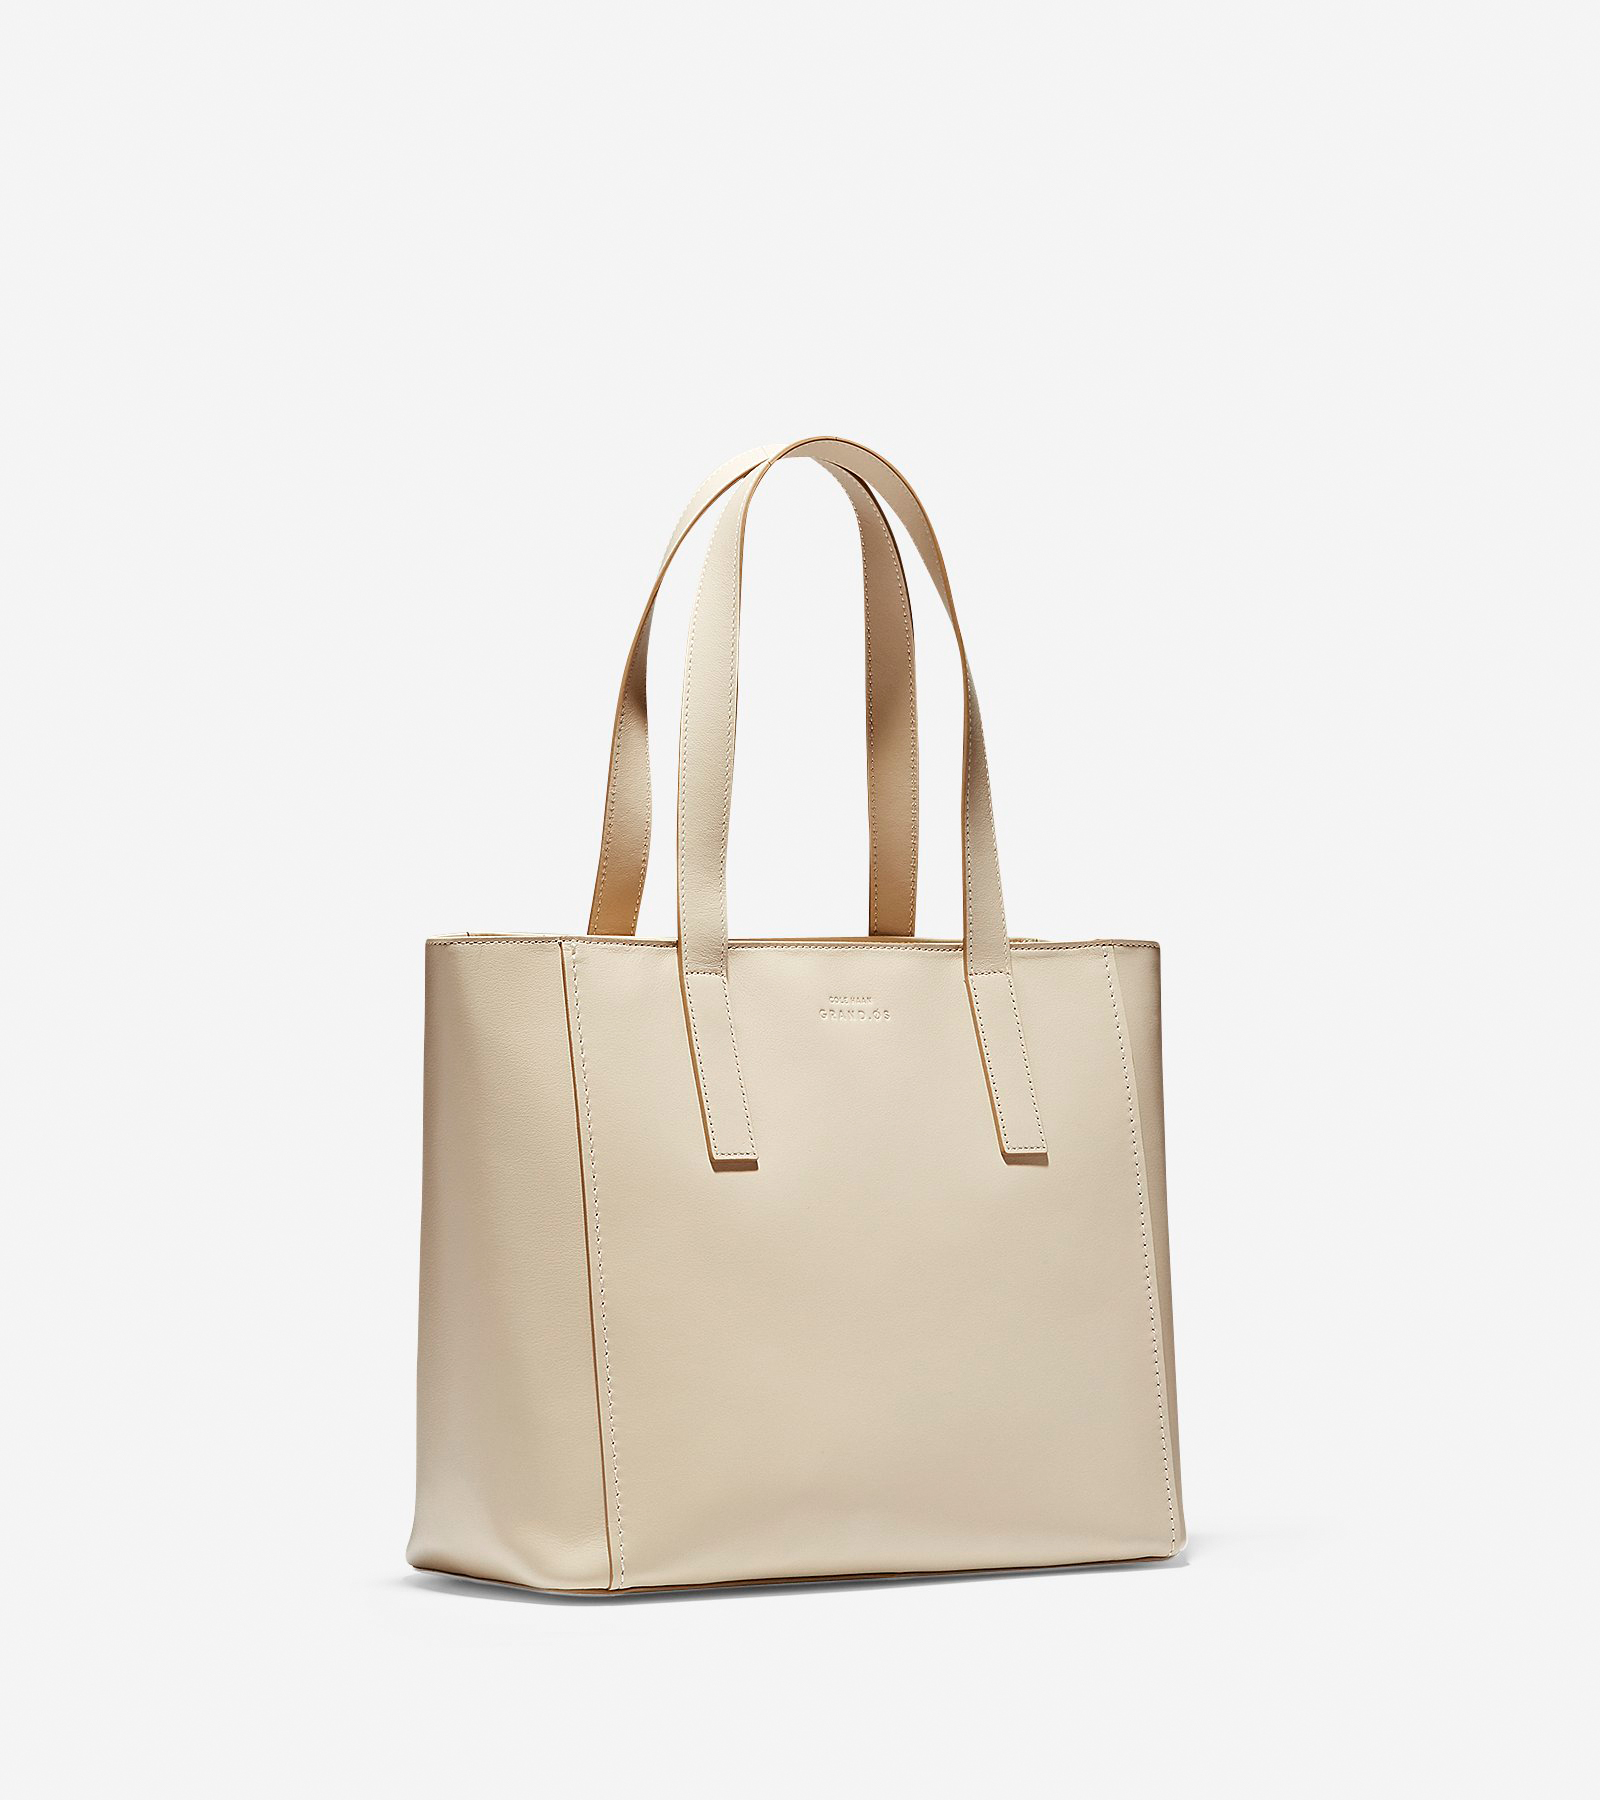 ac0bc7464 Women's Grand.ØS Leather Small Tote in Pumice Stone Leather | Cole ...